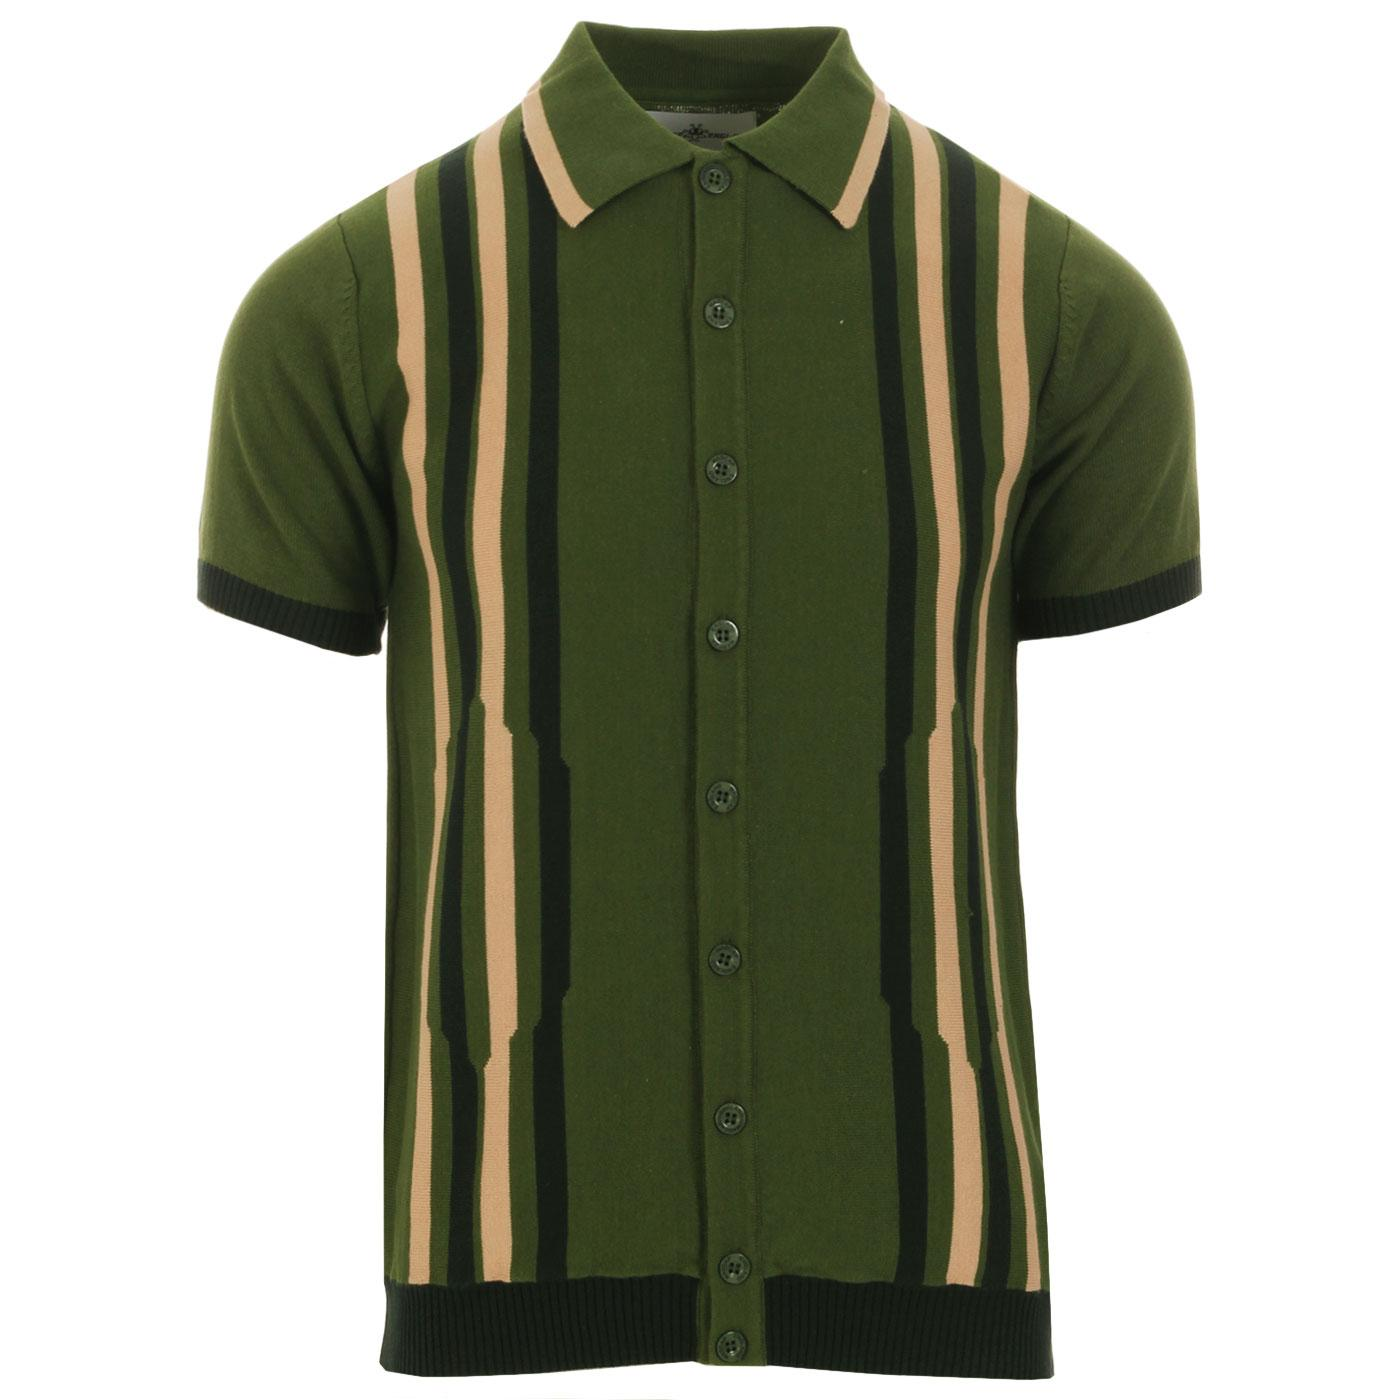 Madcap England Shockwave 1960s Mod Abstract Stripe Knitted Polo Shirt in Cypress Green